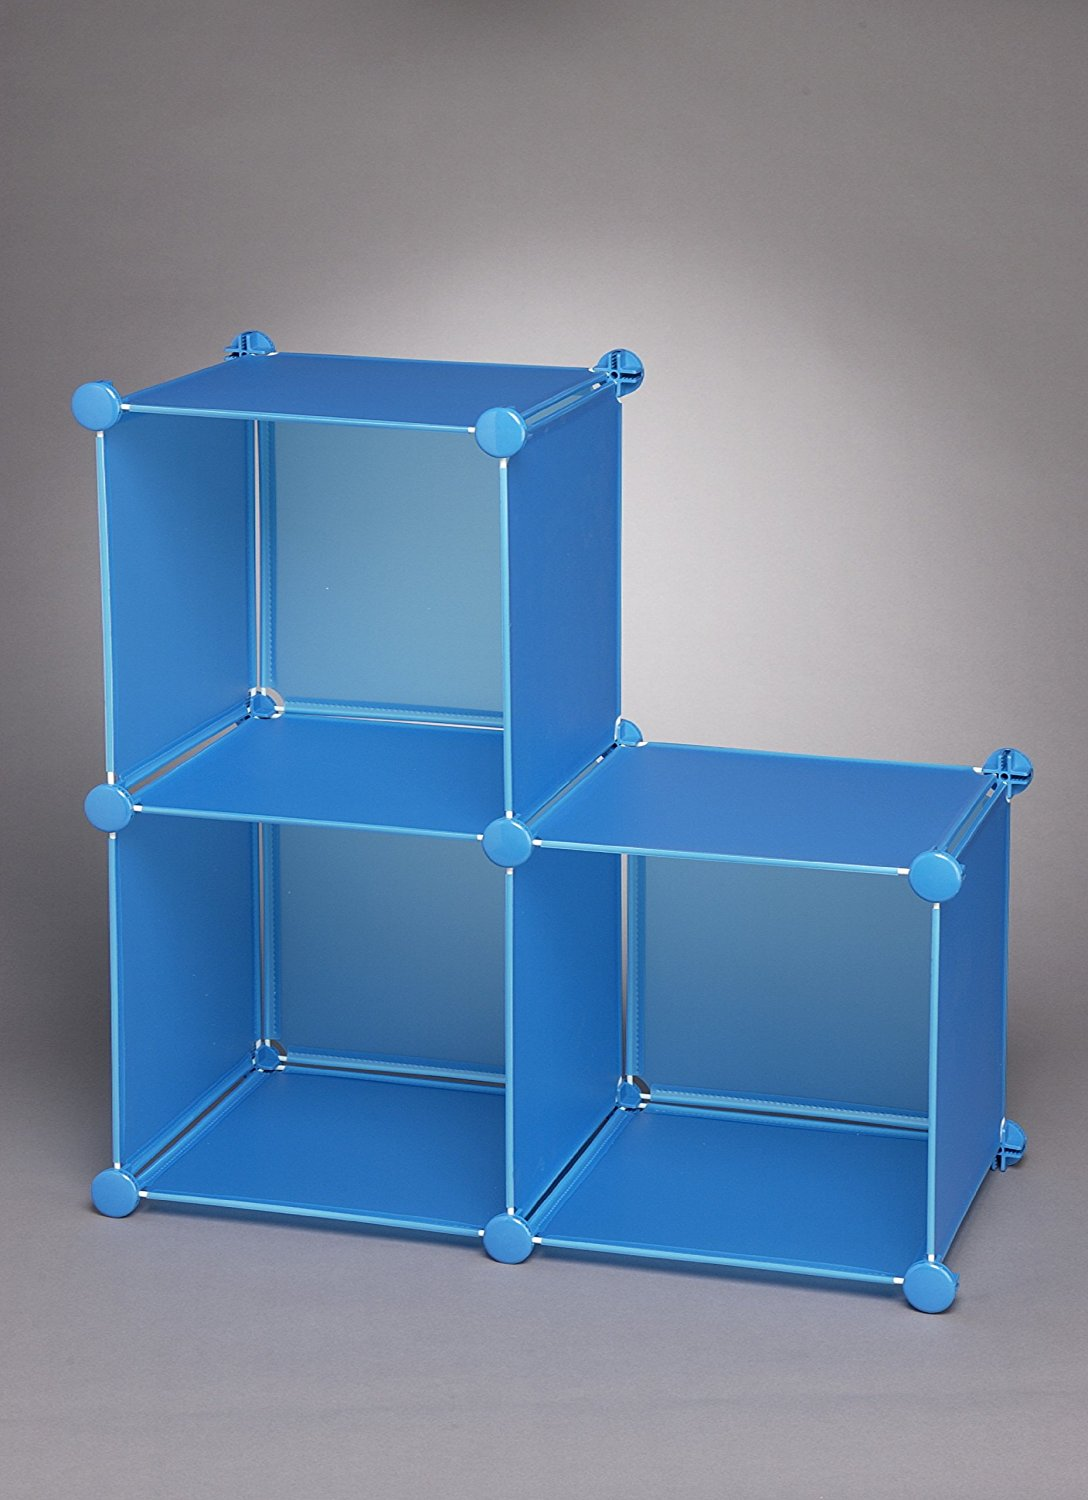 Cheap 6 Cube Storage, find 6 Cube Storage deals on line at Alibaba.com